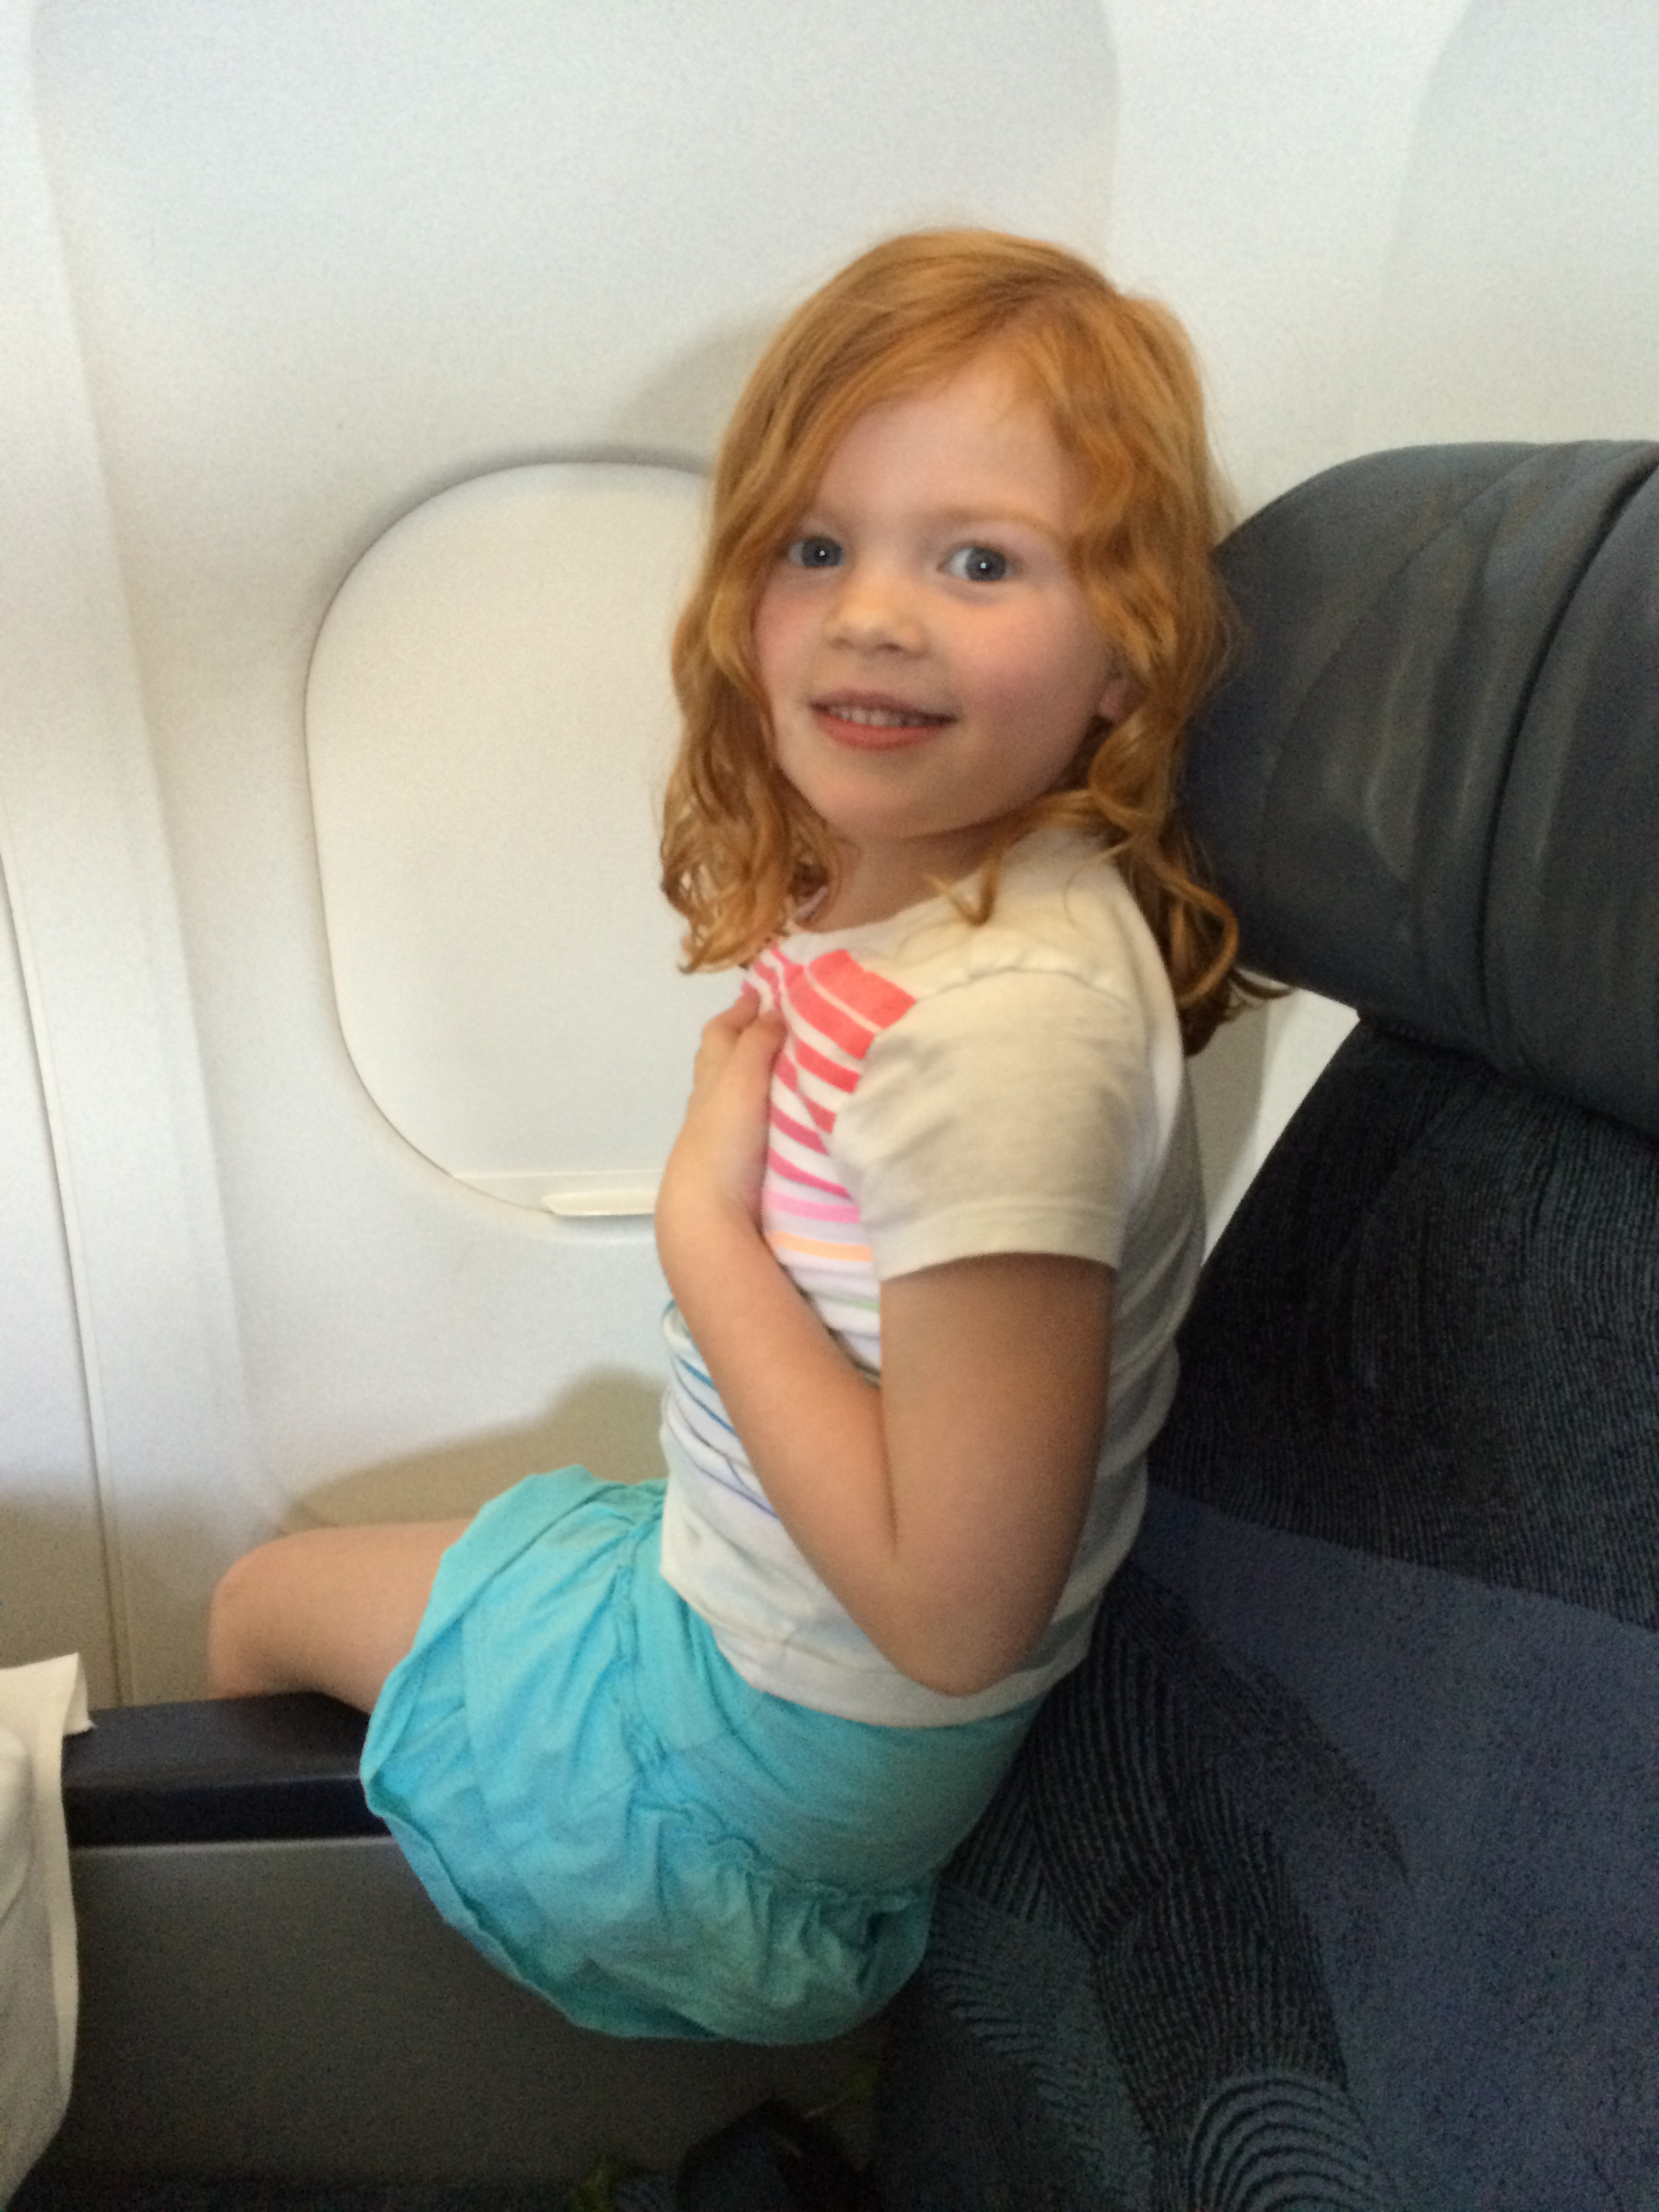 Unaccompanied Minors: Your Complete Guide to Each Airline